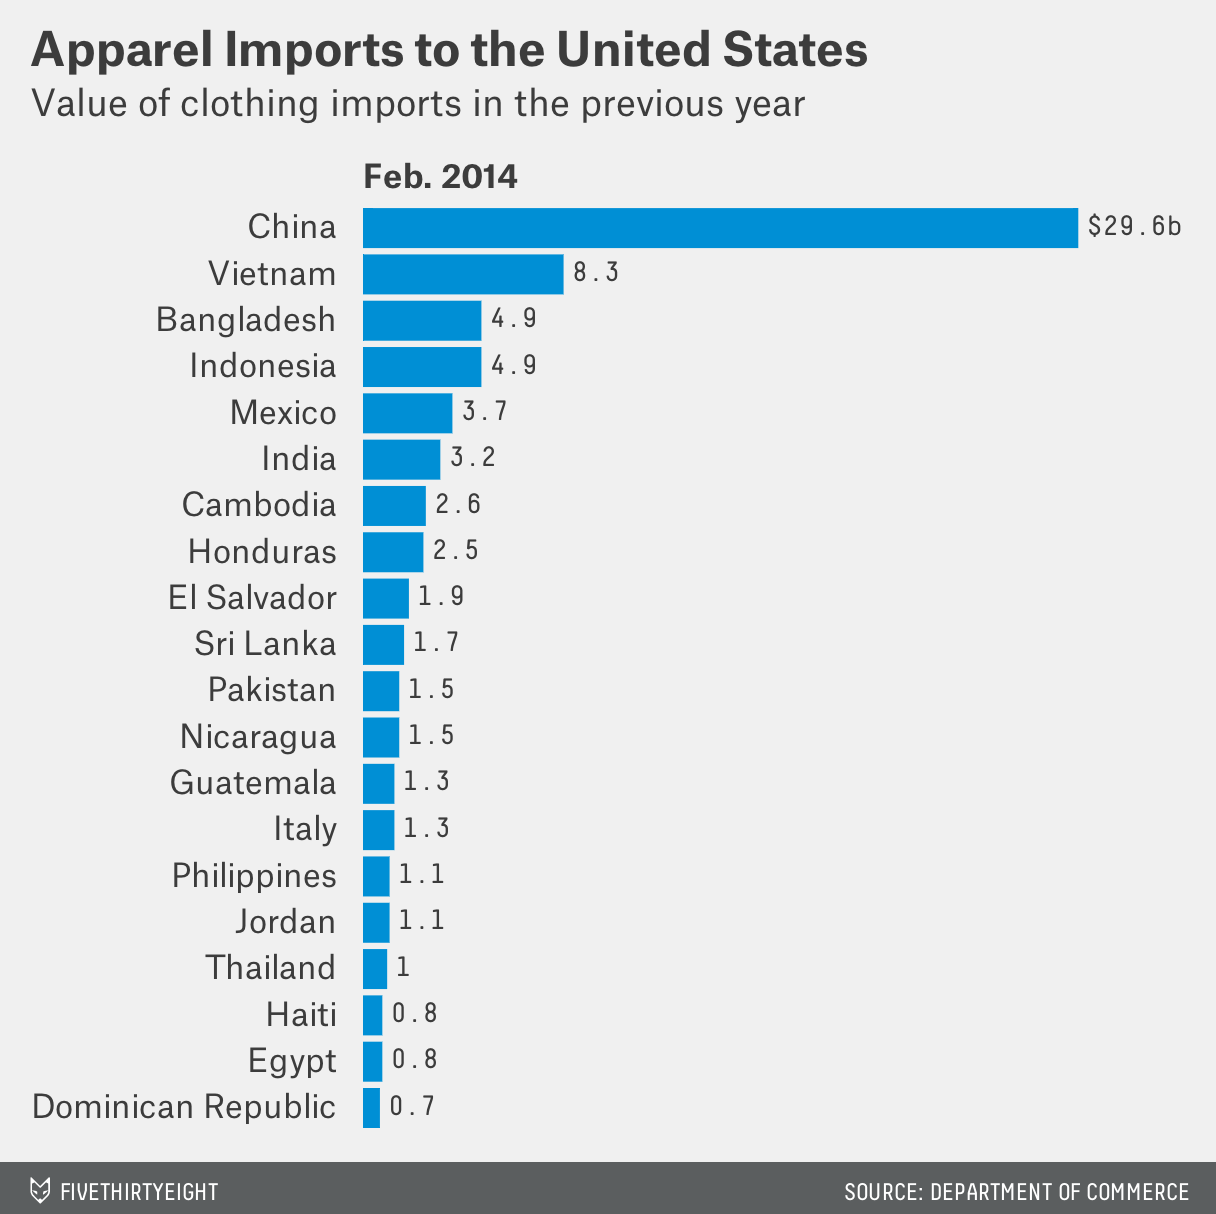 Apparel-Imports-to-the-United-States-Feb-2014_chartbuilder (1)